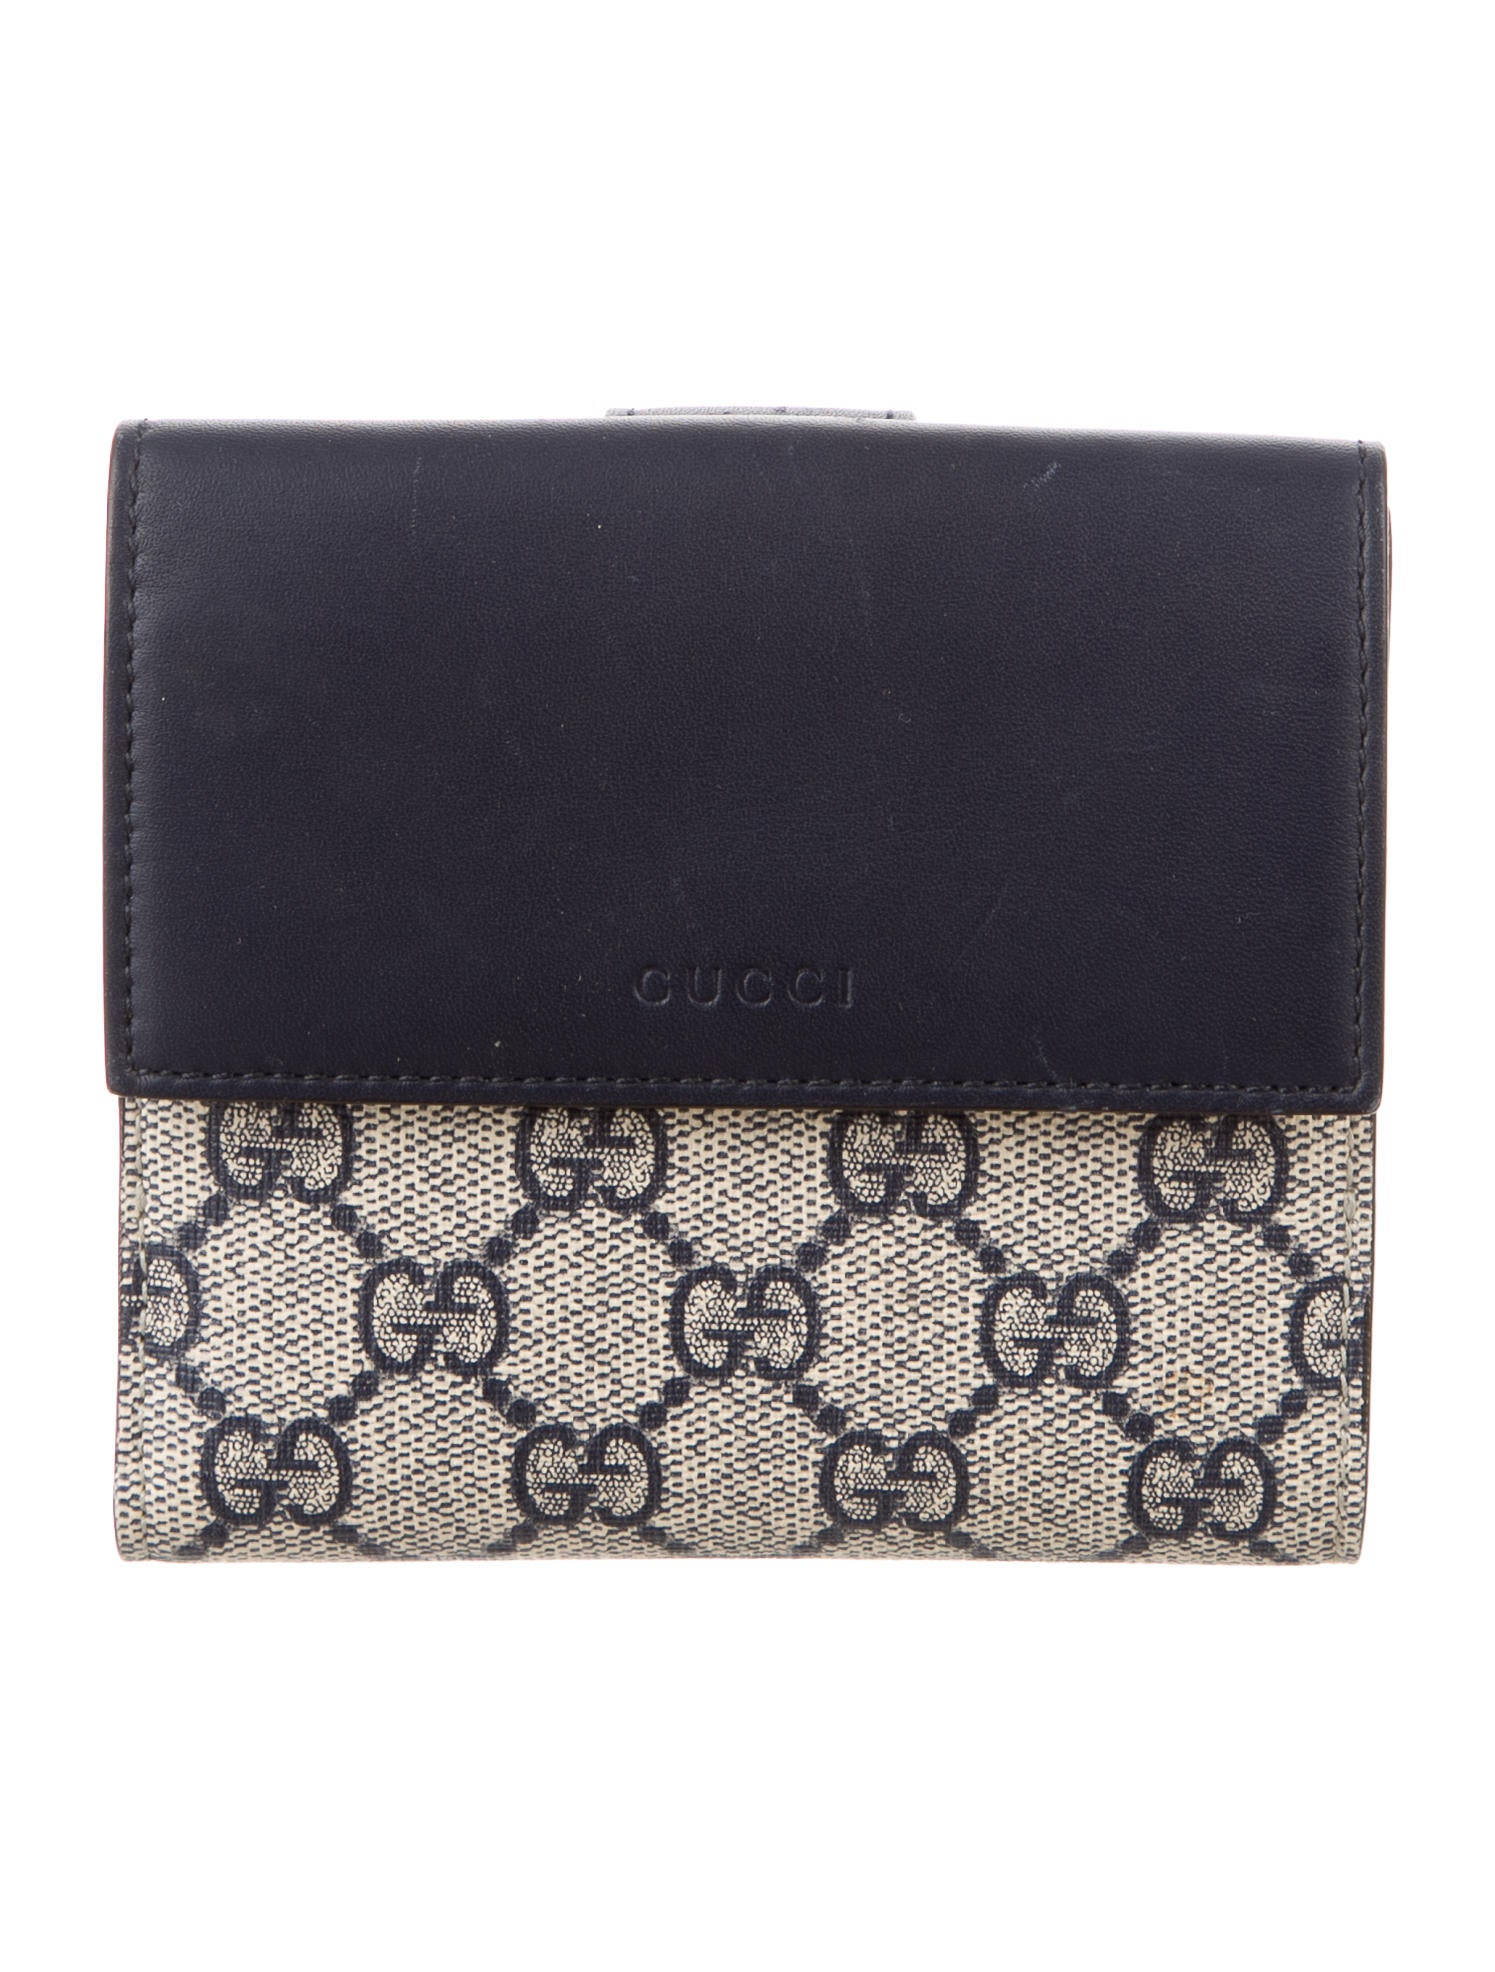 29a4040af5bf Fake Supreme Wallet Mens | Stanford Center for Opportunity Policy in ...